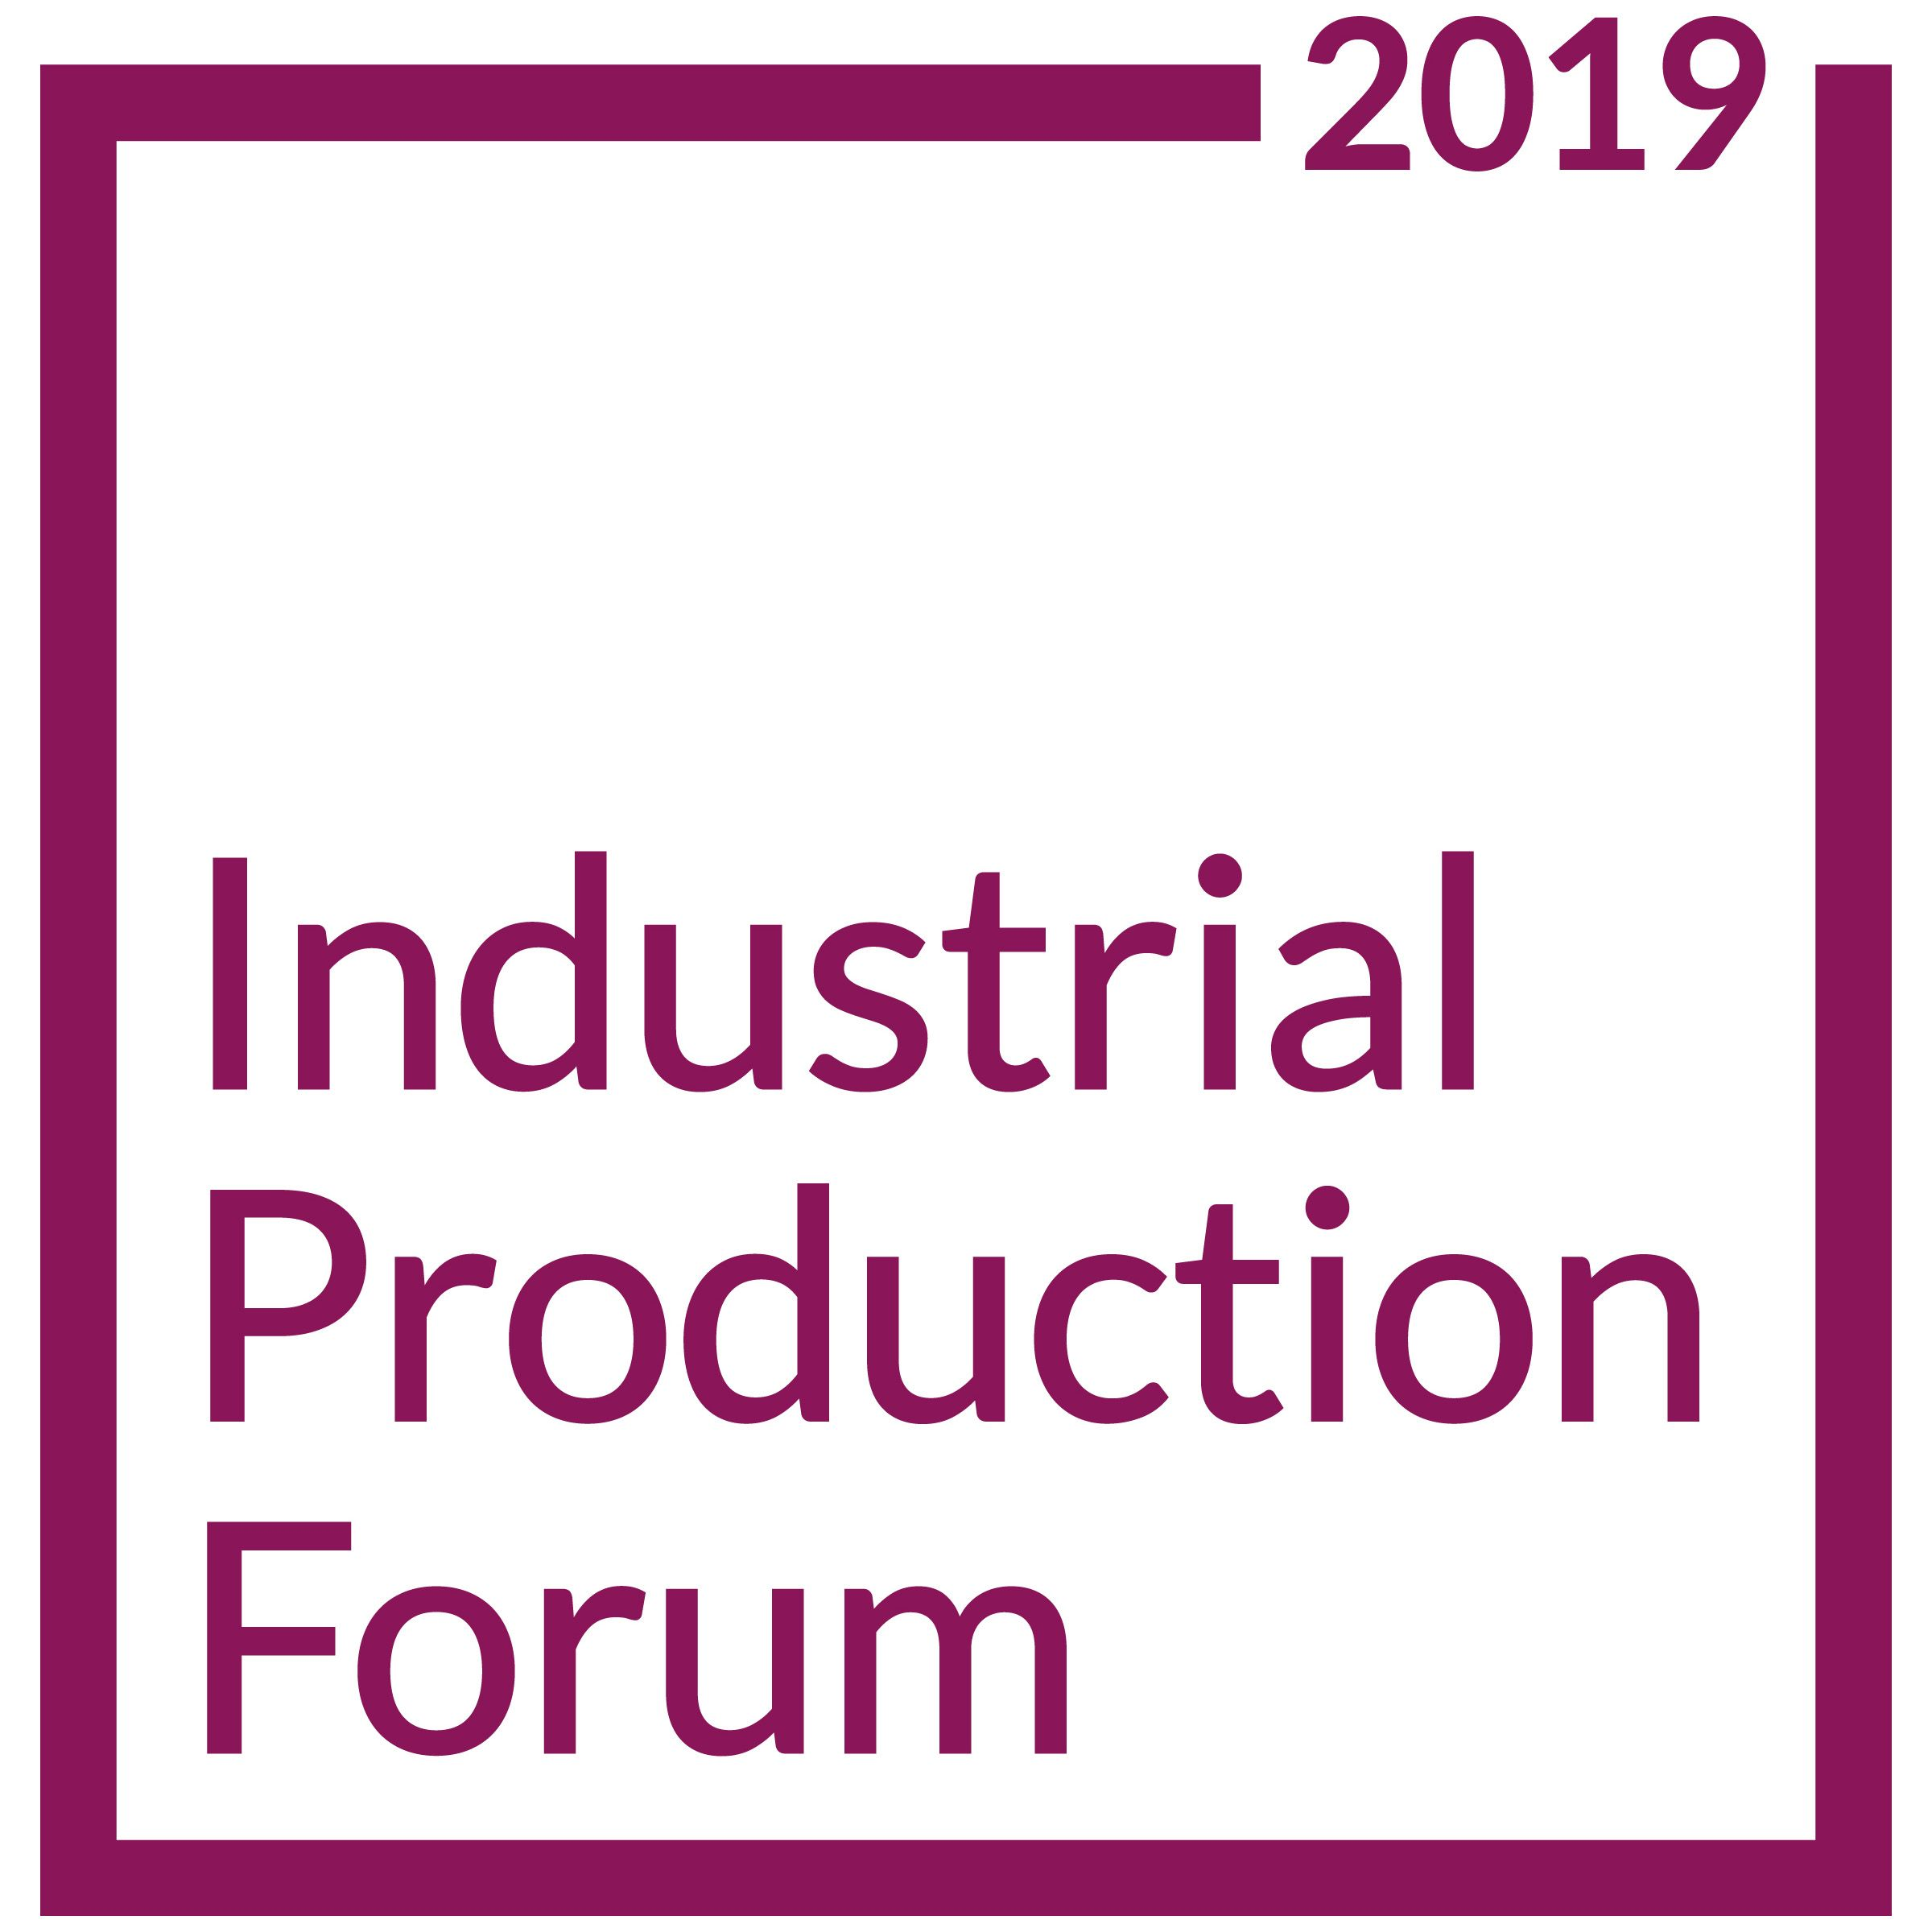 Industrial Production Forum 2019